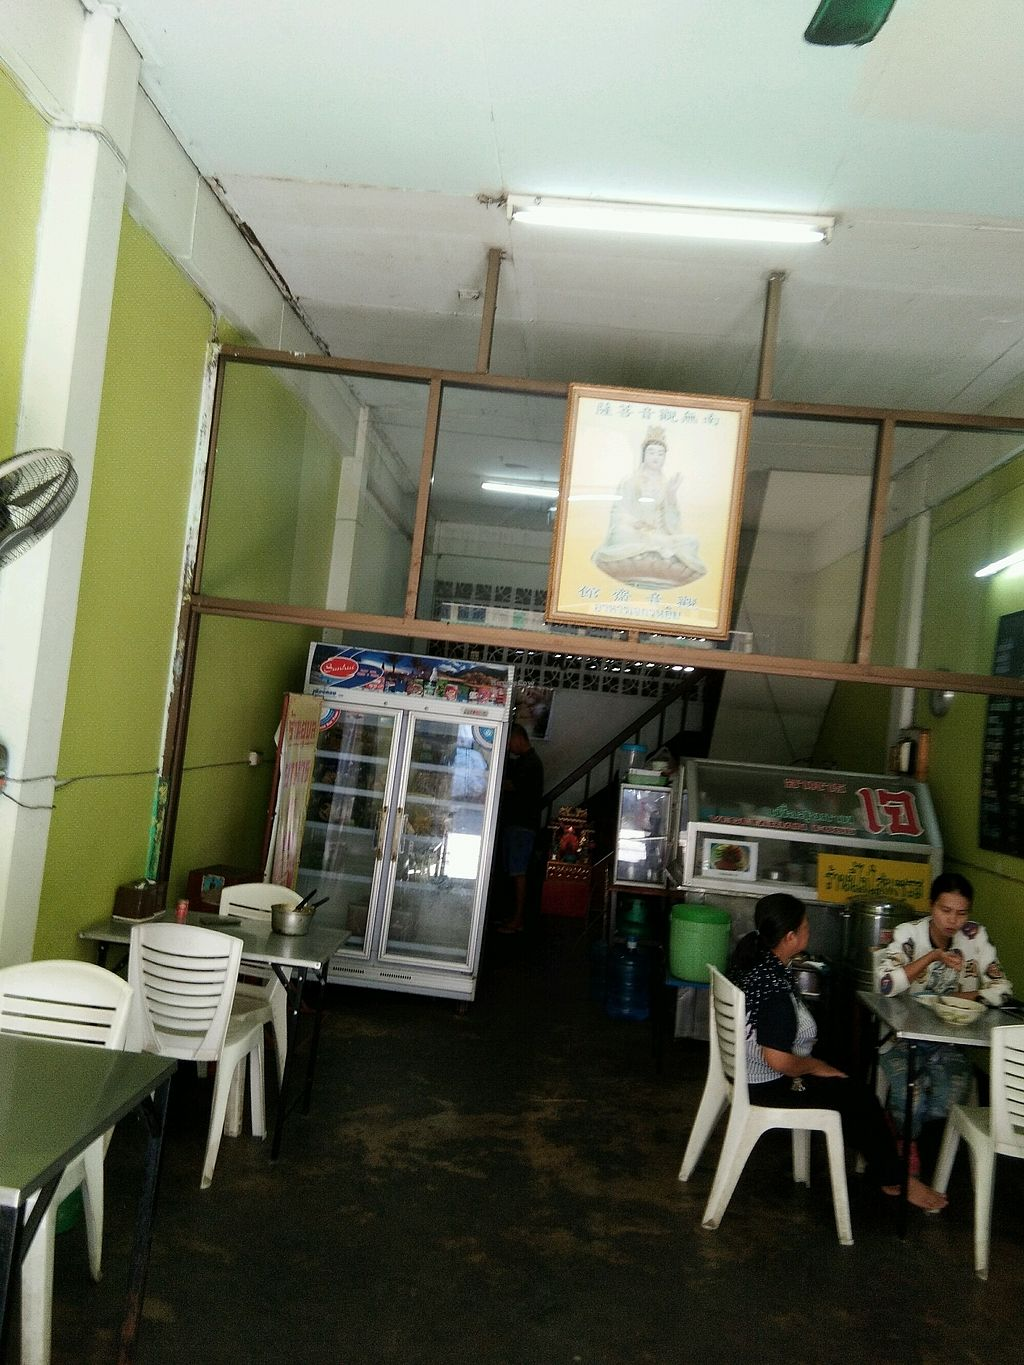 """Photo of Vegetarian - Khuanthani Rd  by <a href=""""/members/profile/Michas"""">Michas</a> <br/>Cafe  <br/> December 23, 2017  - <a href='/contact/abuse/image/106210/338279'>Report</a>"""